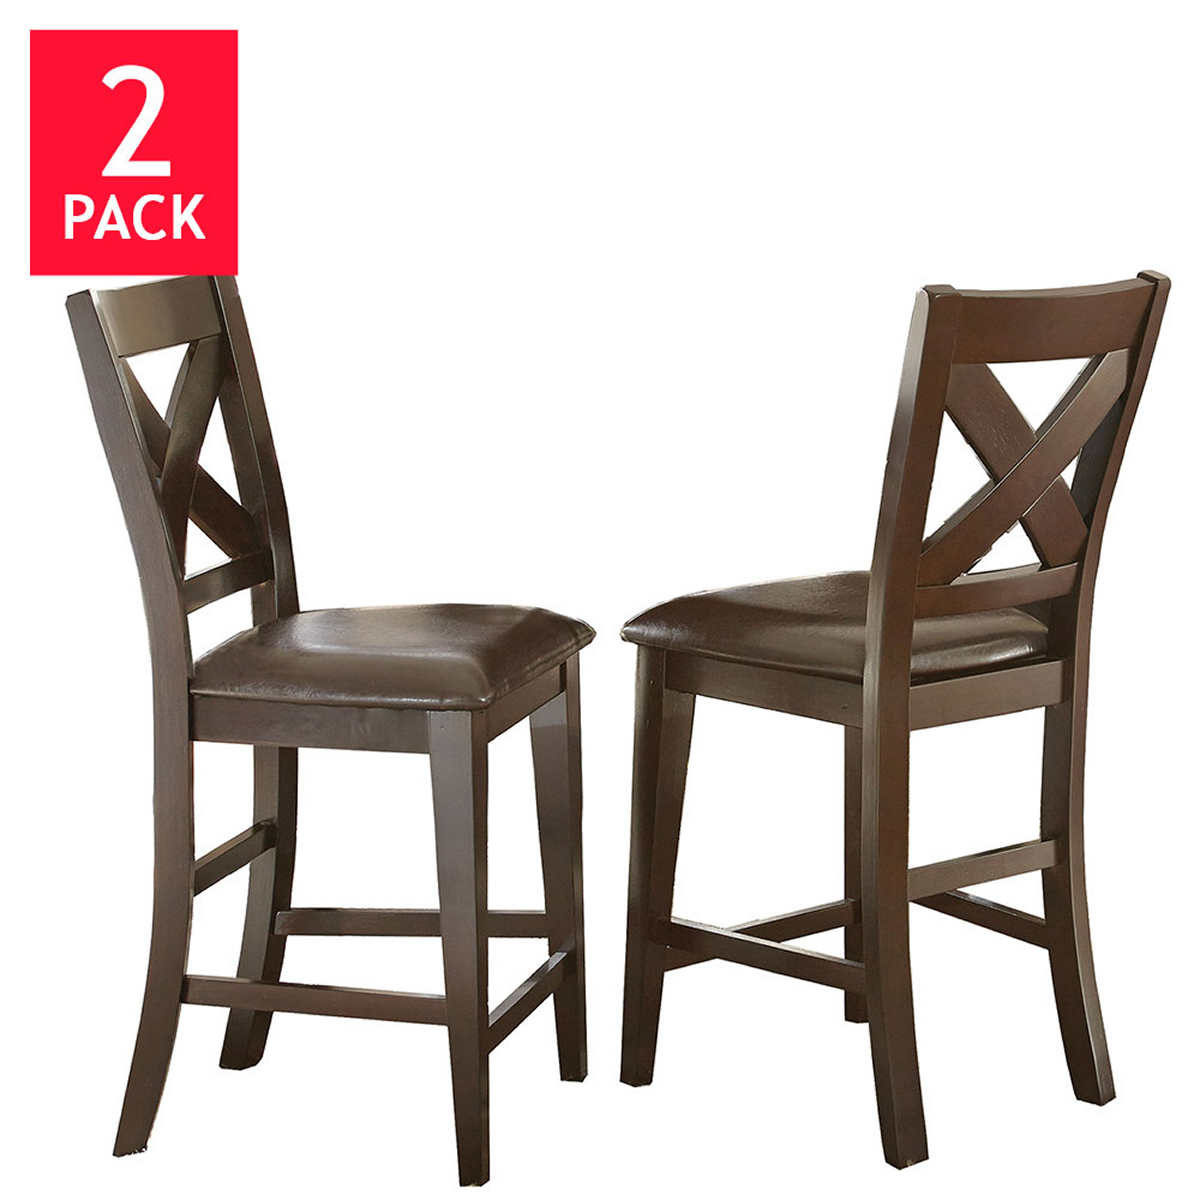 counter height barstools counter height kitchen chairs Reece Counter Height Dining Chair 2 pack